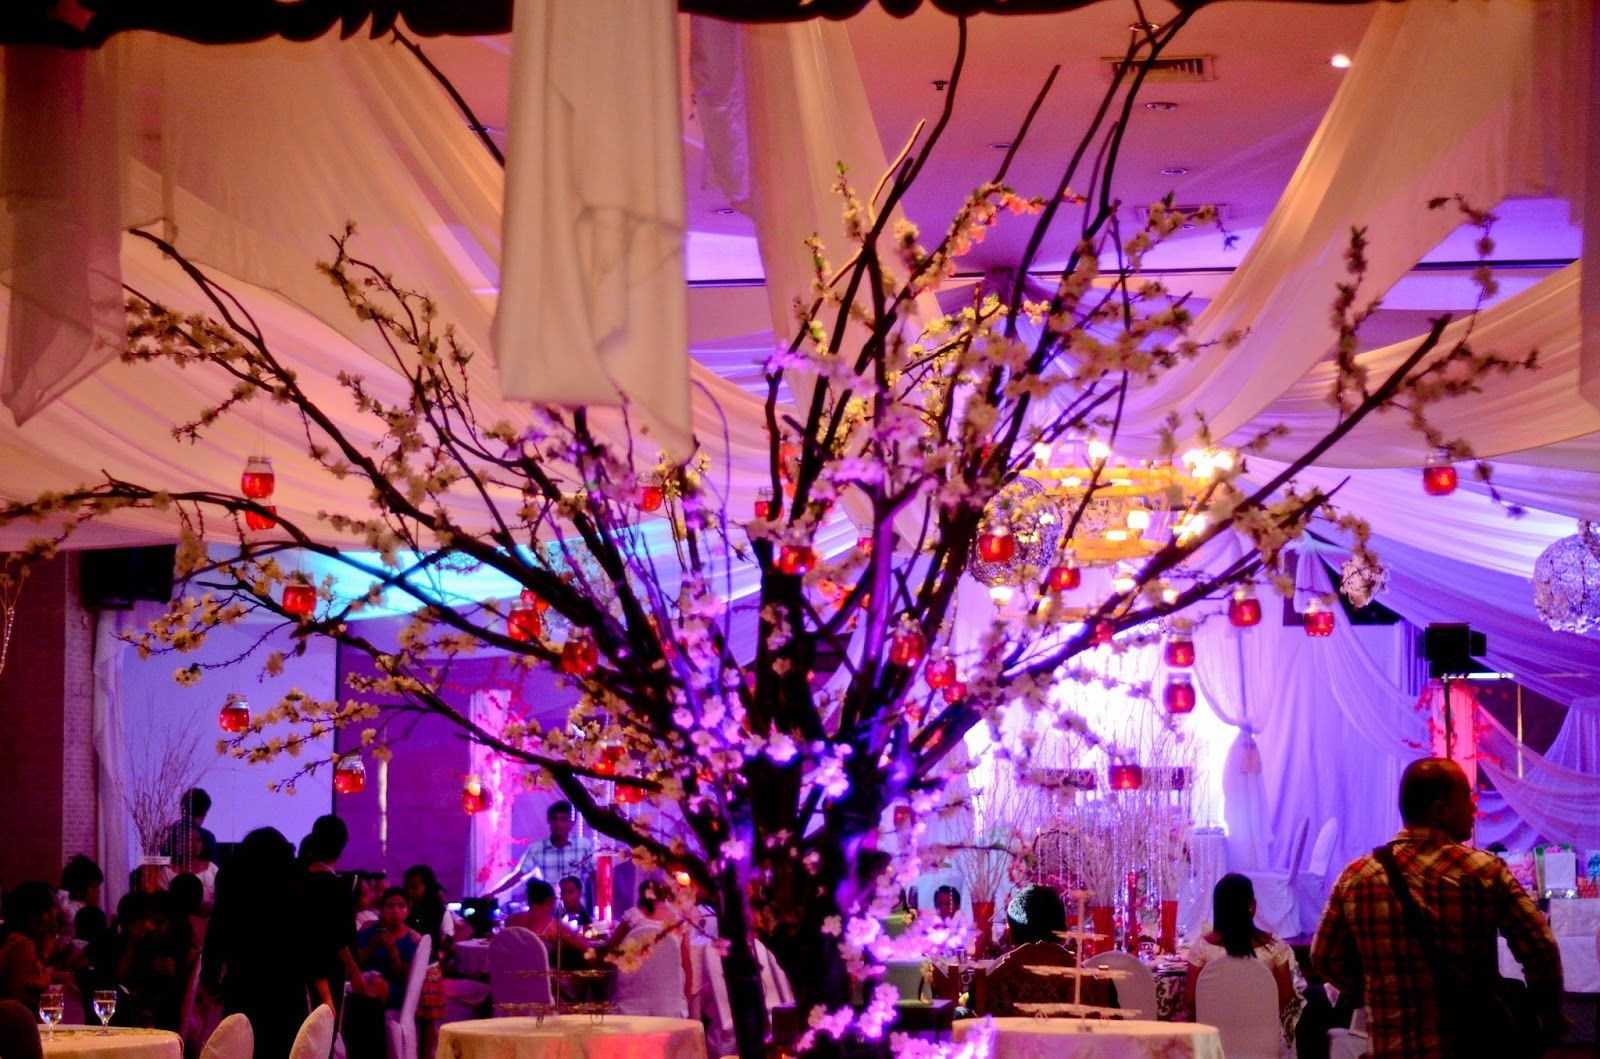 Wedding decorations trees with lights  cherry blossom tree centerpieces images  Google Search  Wedding